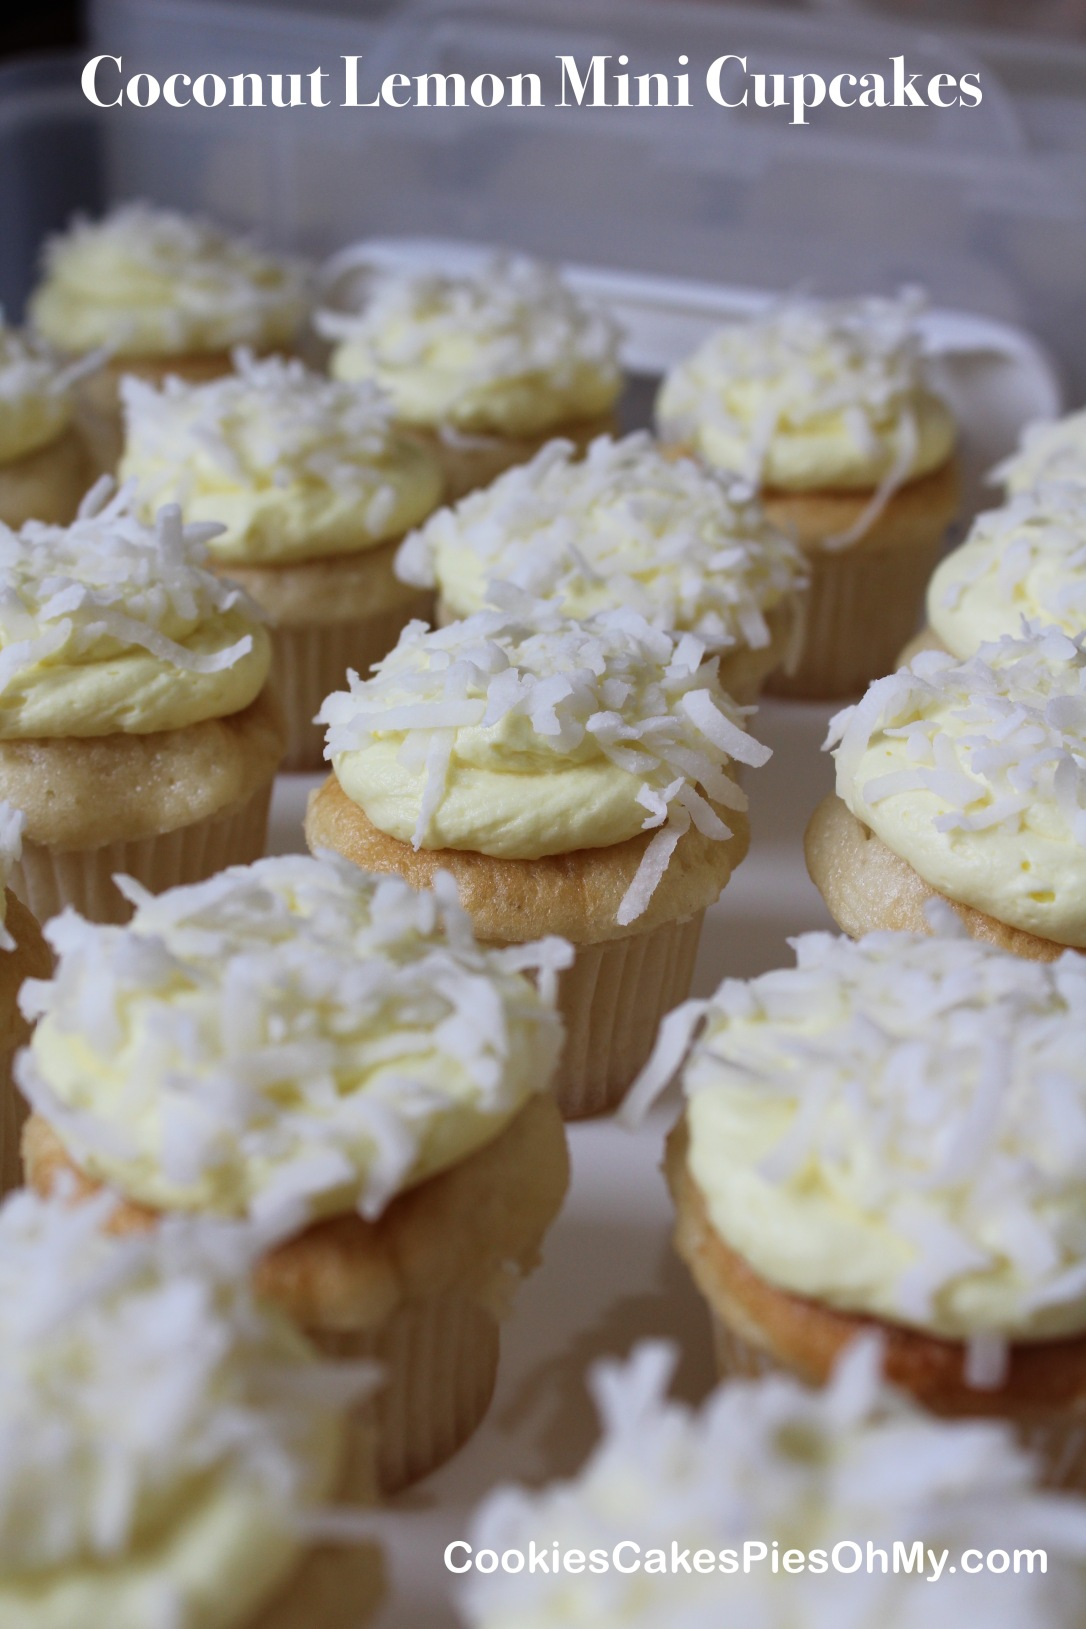 Coconut Lemon Mini Cupcakes